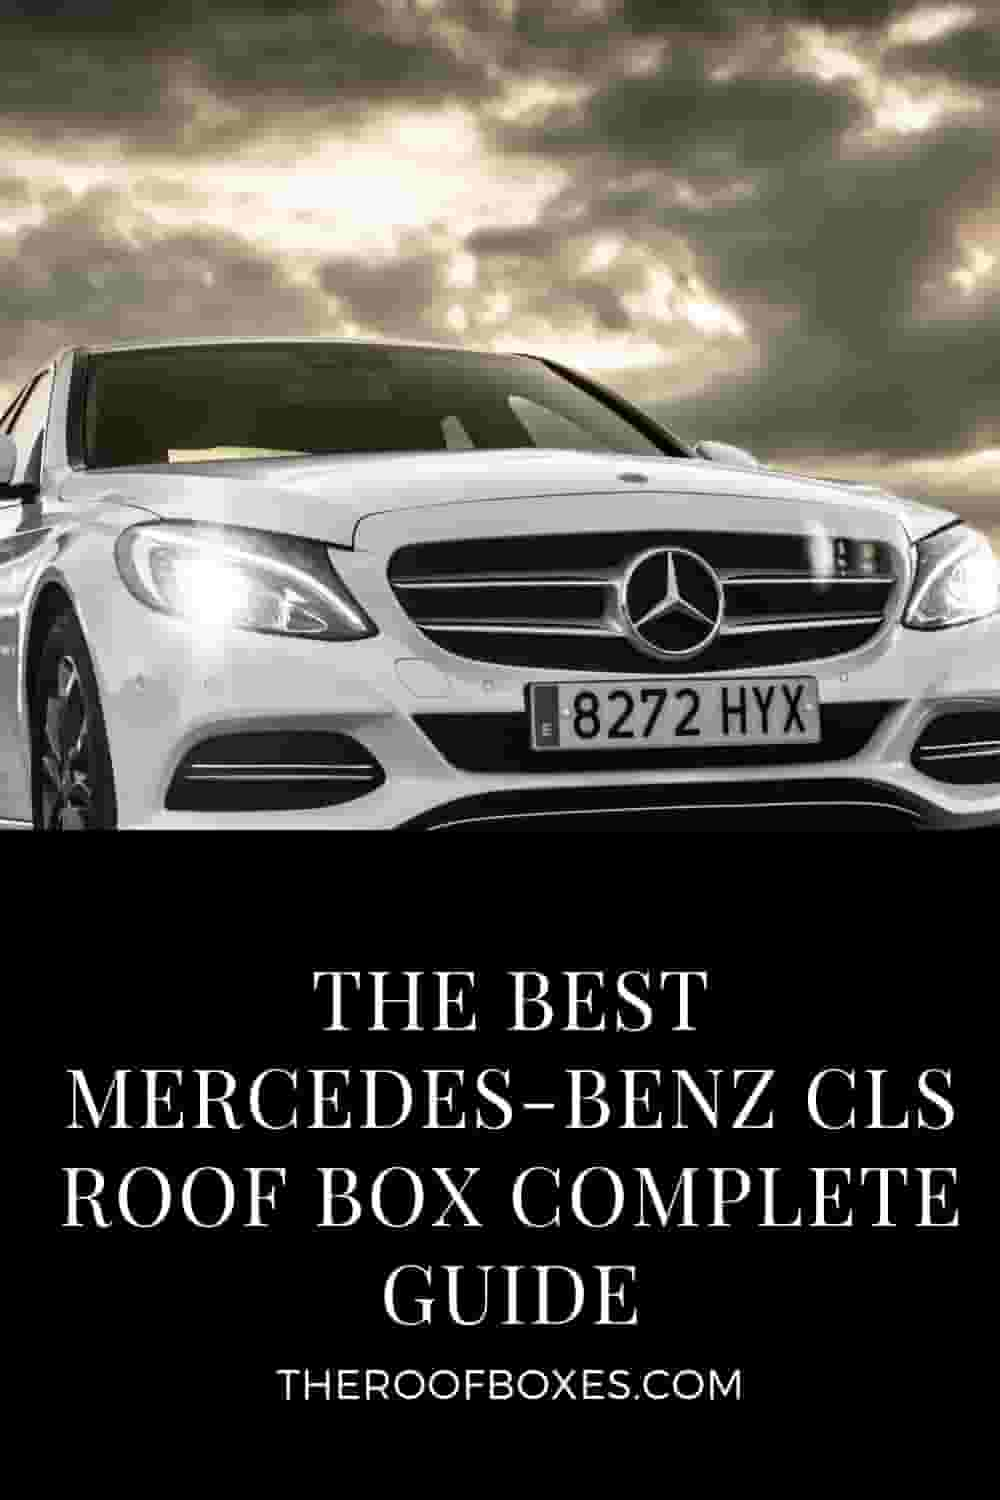 Mercedes-Benz CLS Roof Box– Reviews and Comparison